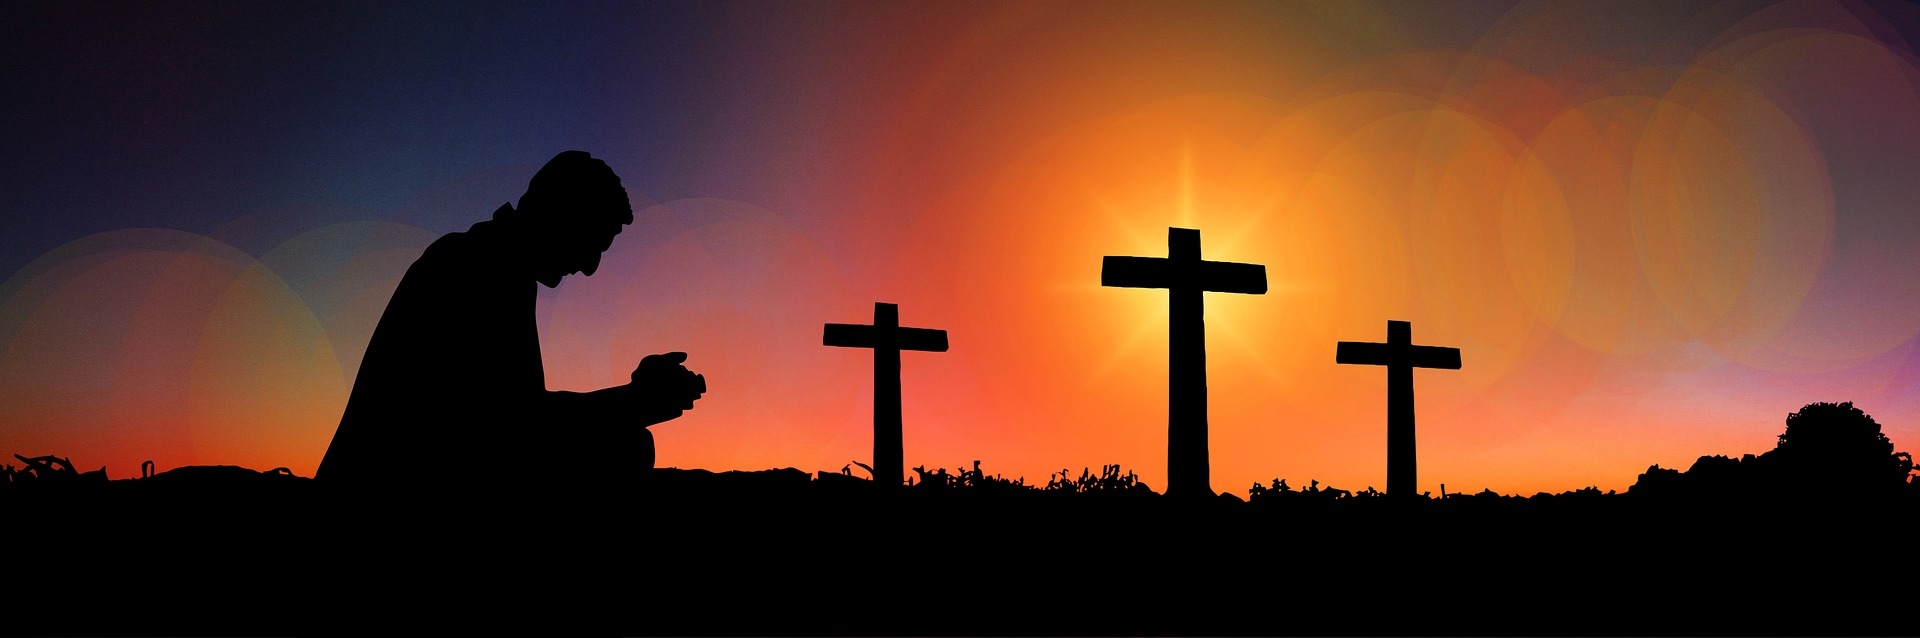 5th Sunday of Lent: Repentence & Mortality